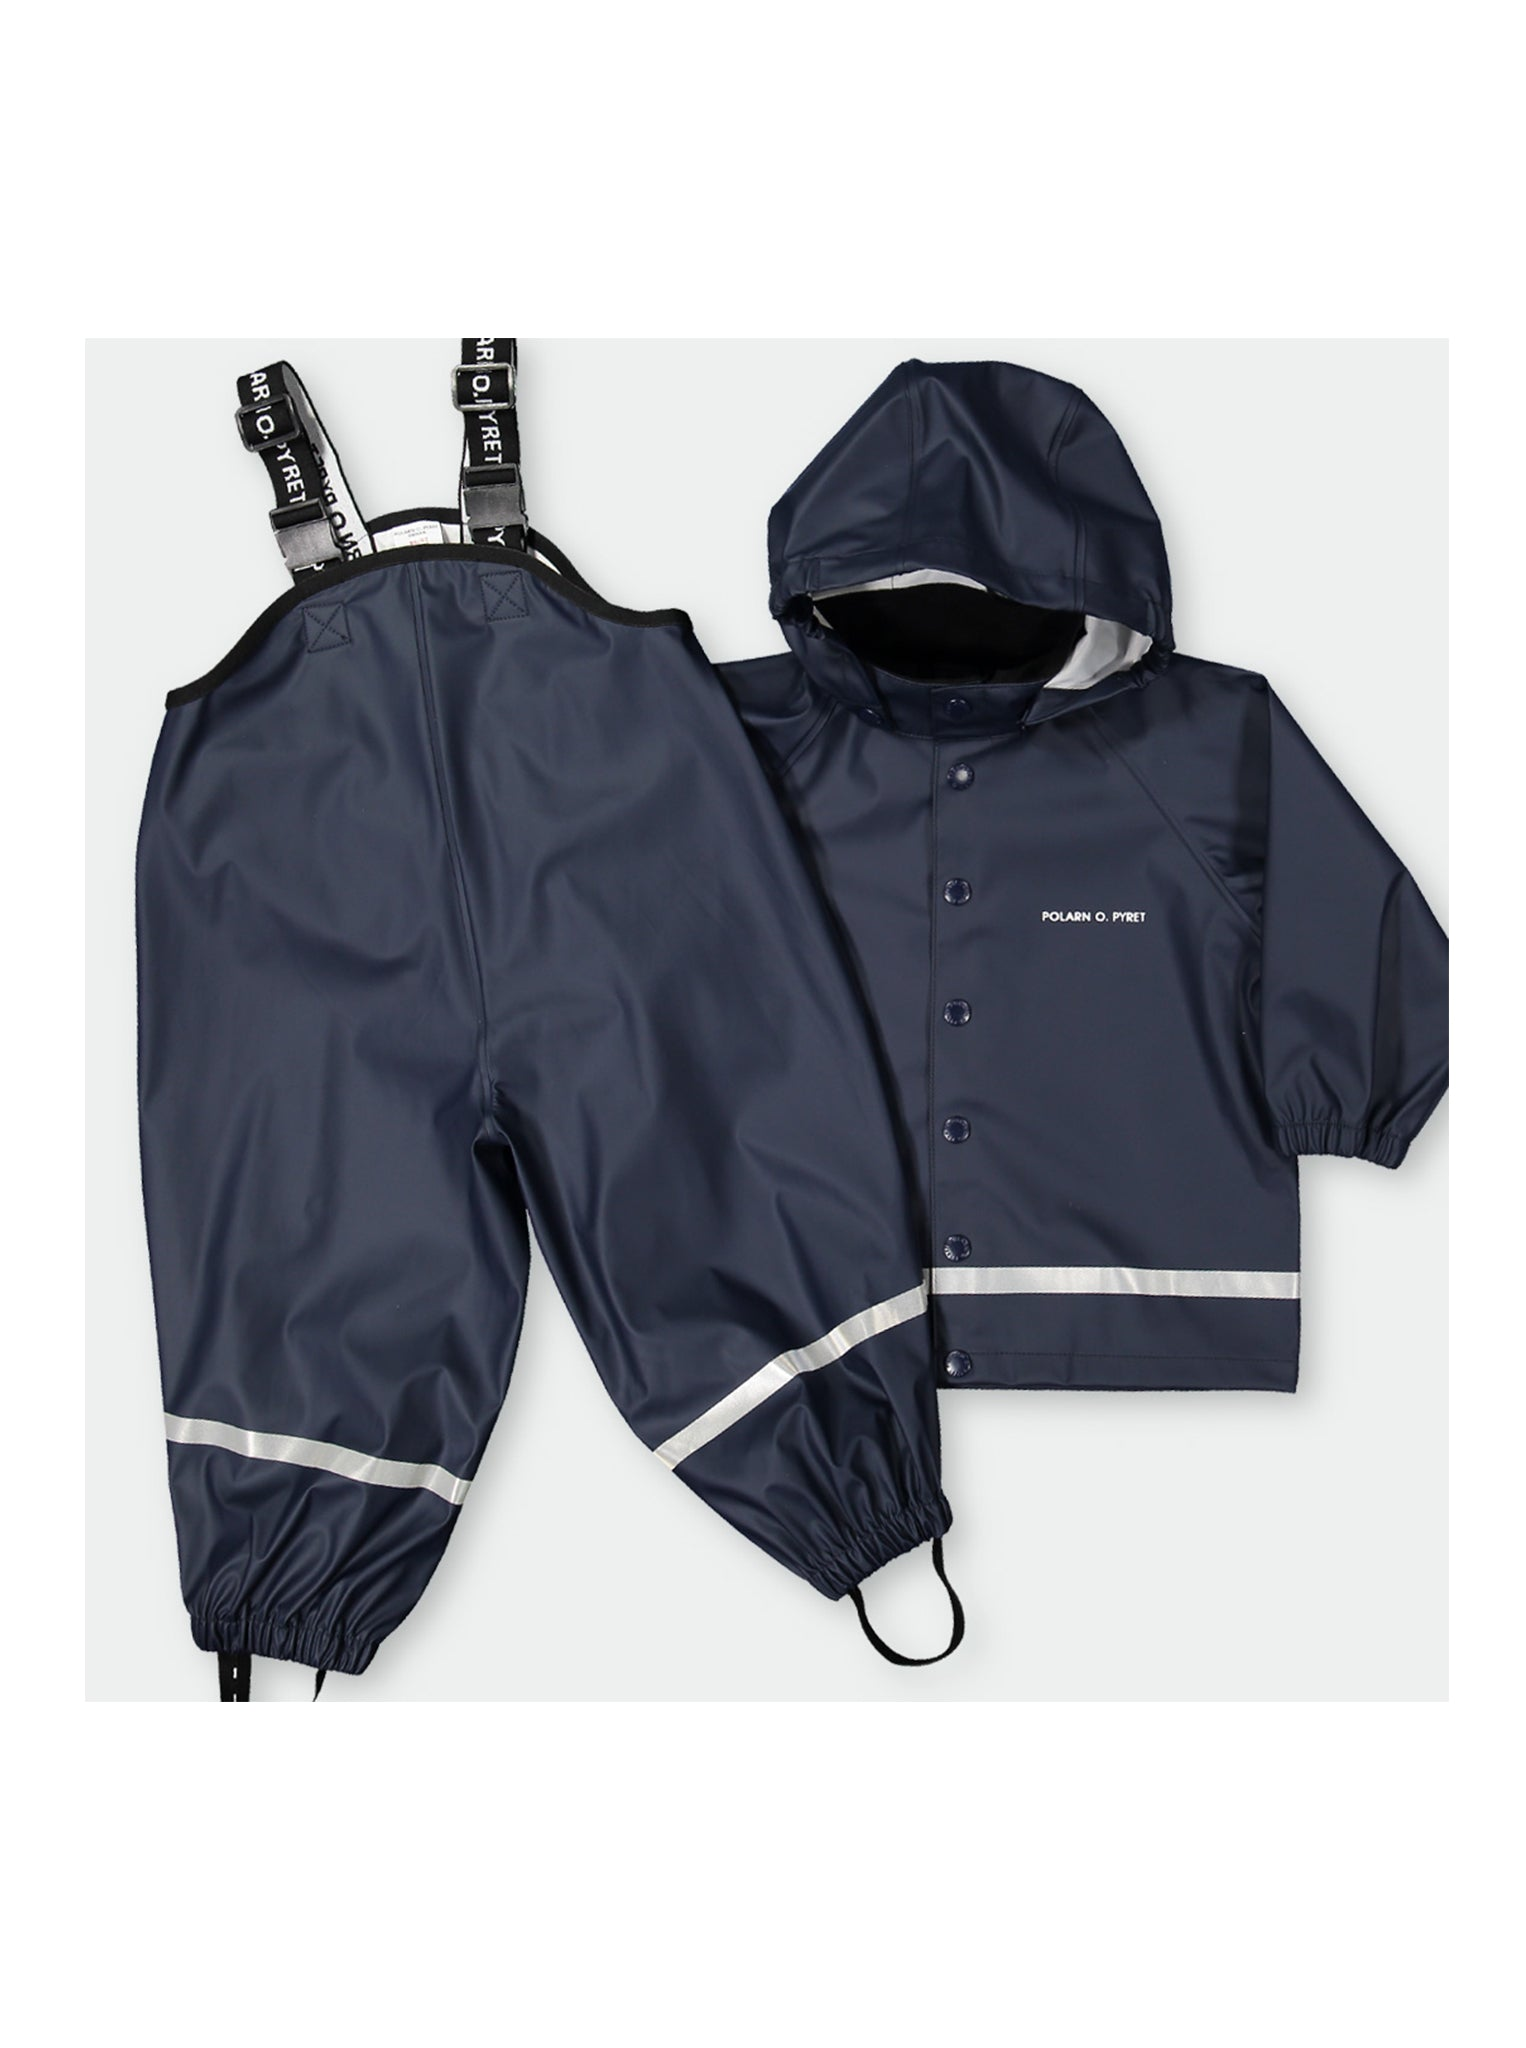 Waterproof Kids Raincoat